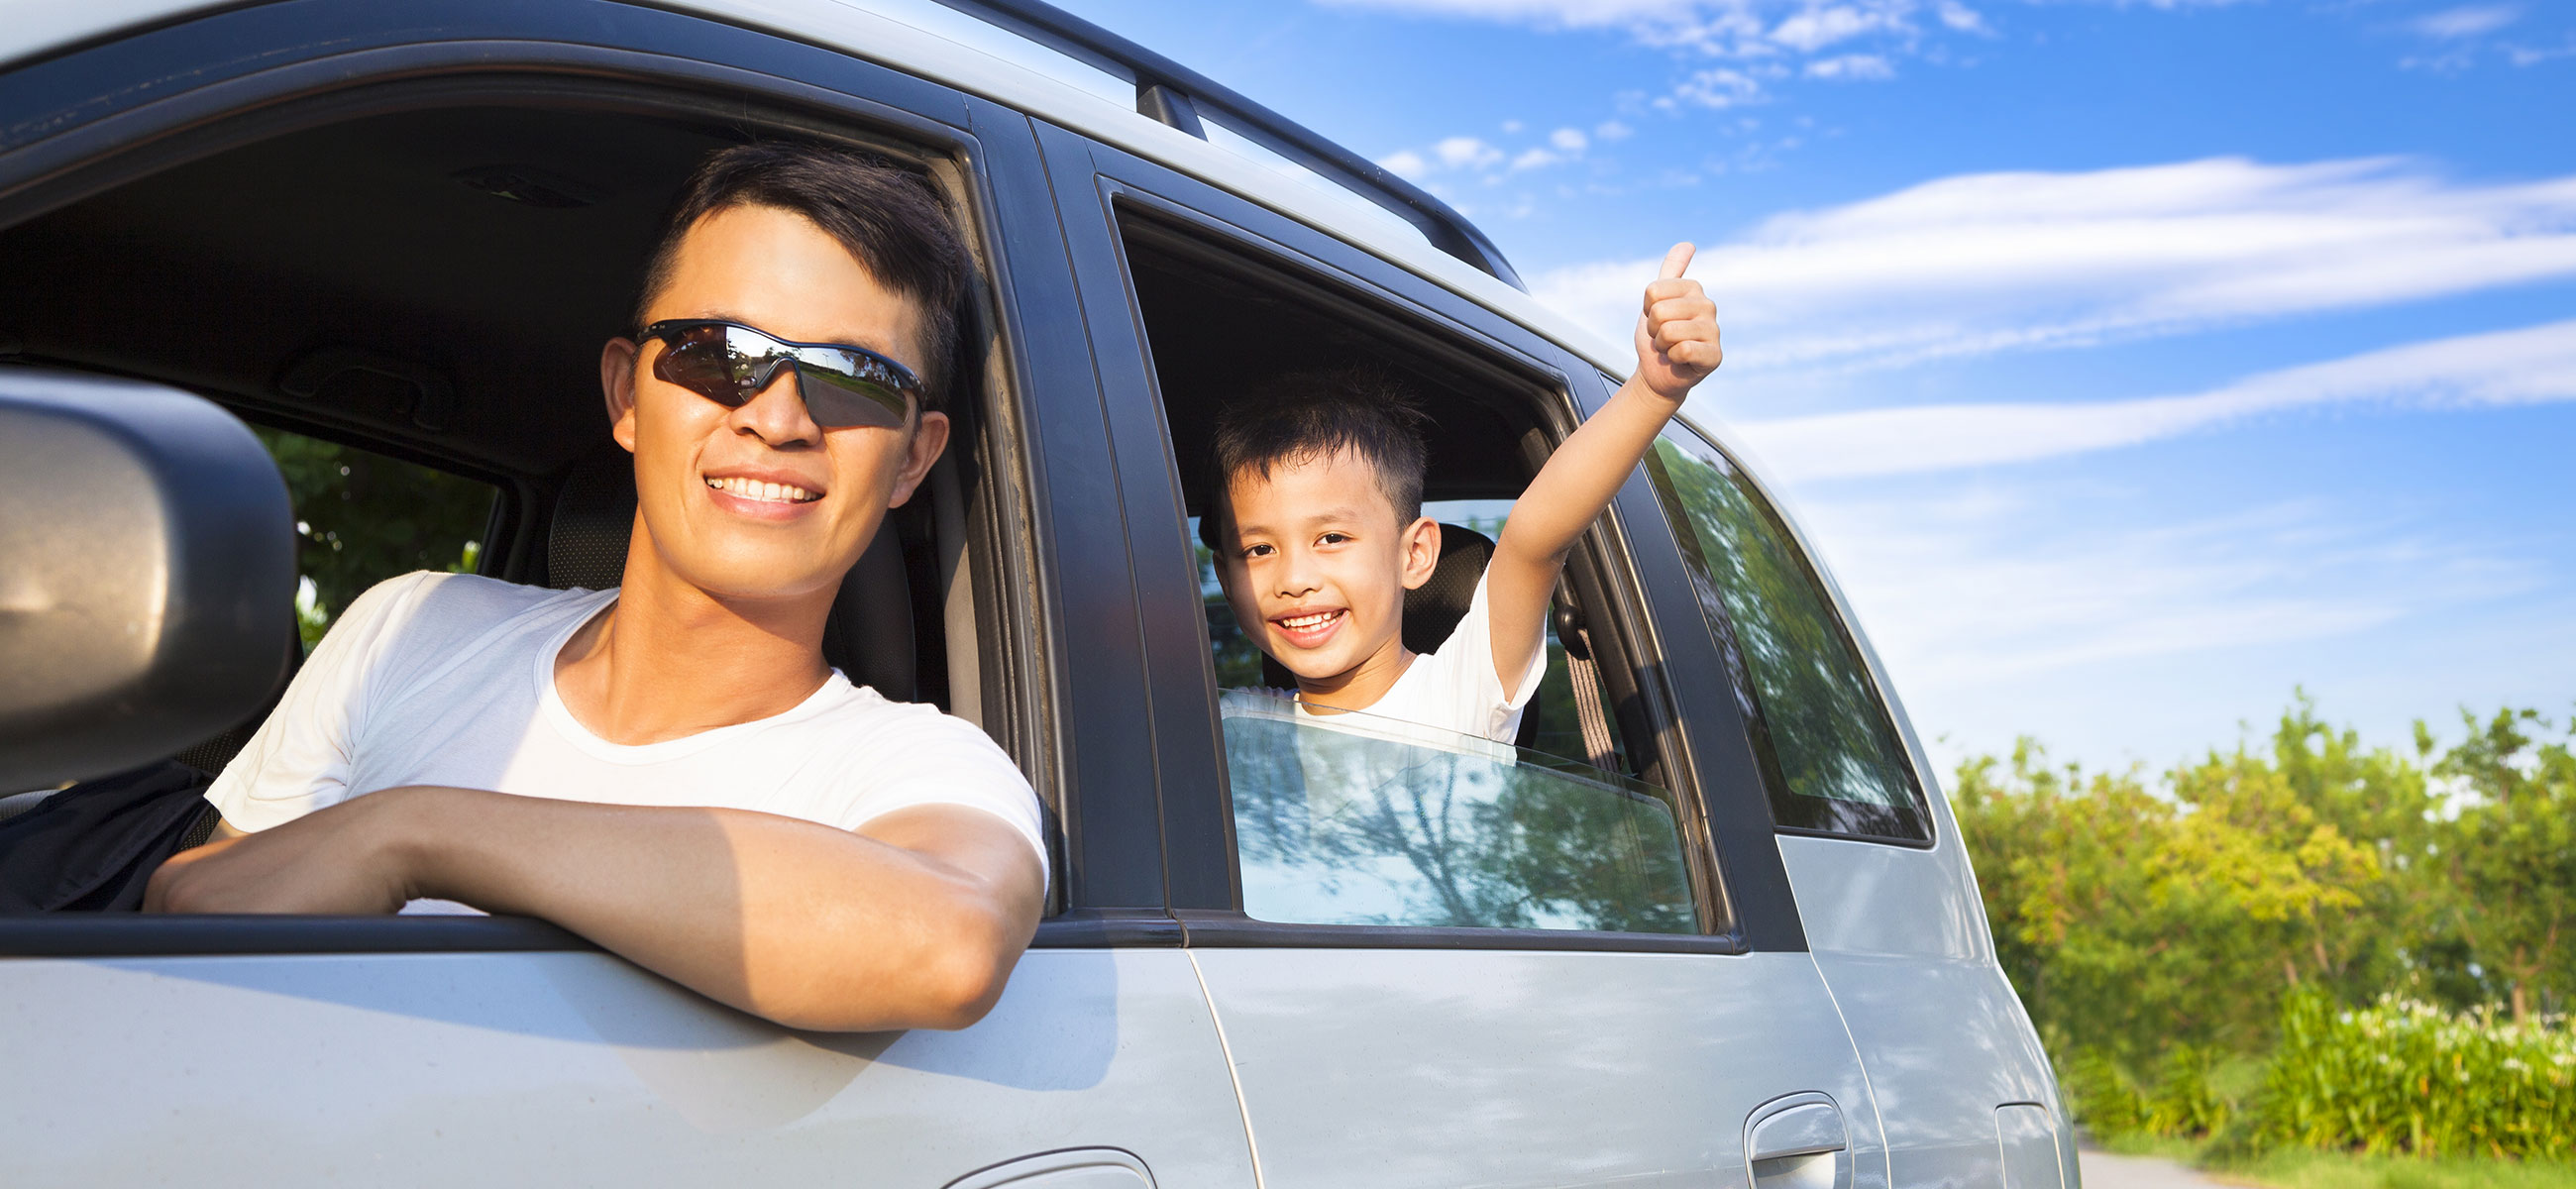 New York Autoowners with auto insurance coverage